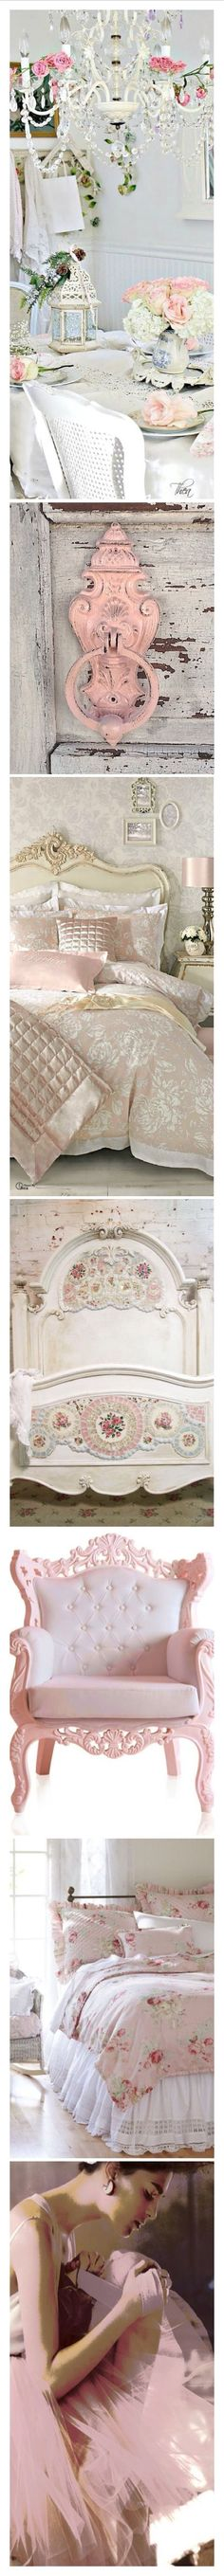 Shabby Chic - Luxurydotcom